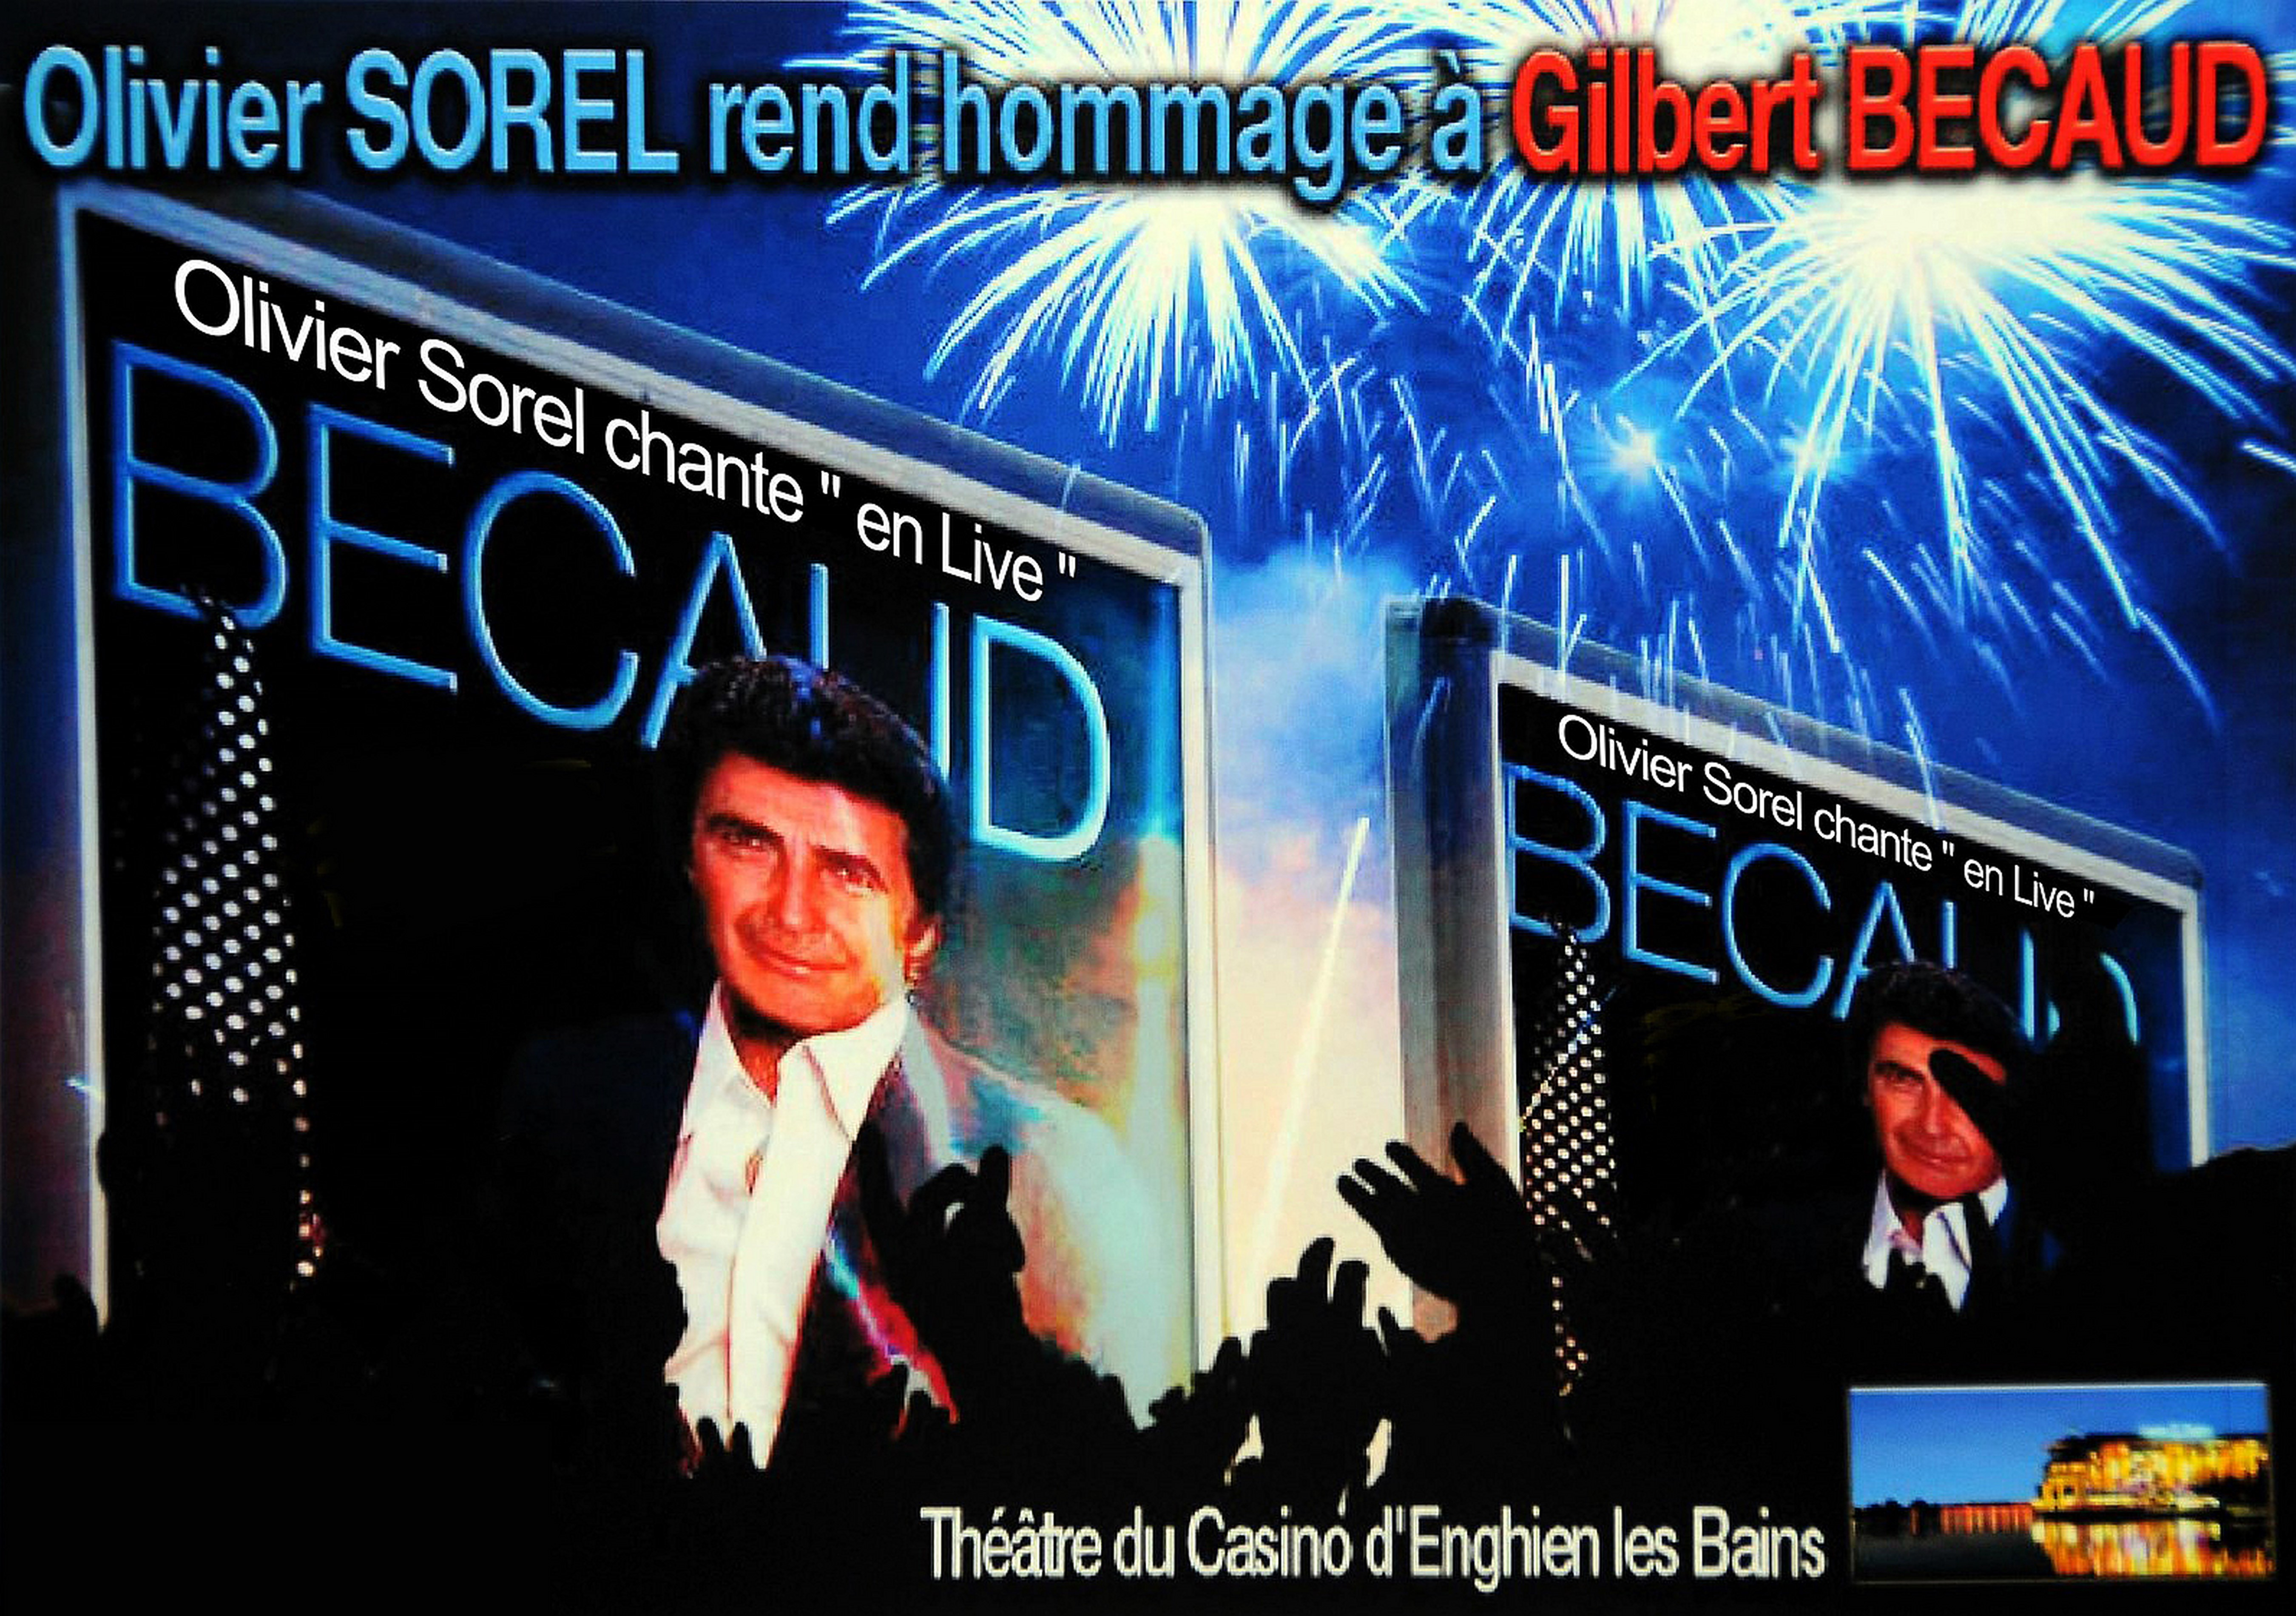 hommage_a_becaud_olivier_sorel_theatre_enghien-les_bains_spectacle.jpg